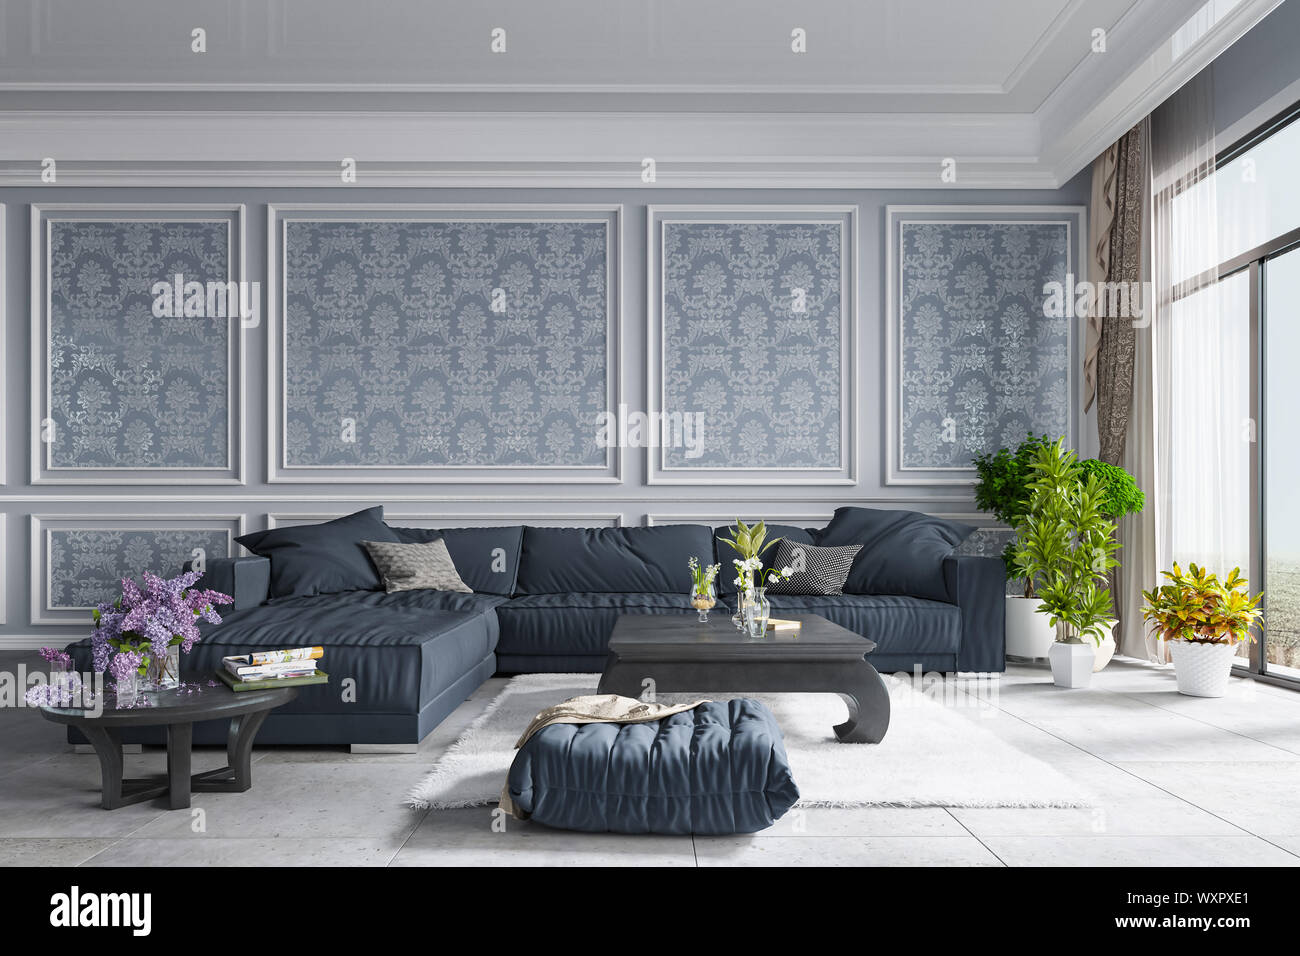 Decorative Background For Home Office And Hotel Modern Interior Design Living Room Room Texture Wall Background And Plants 3d Rendering Stock Photo Alamy